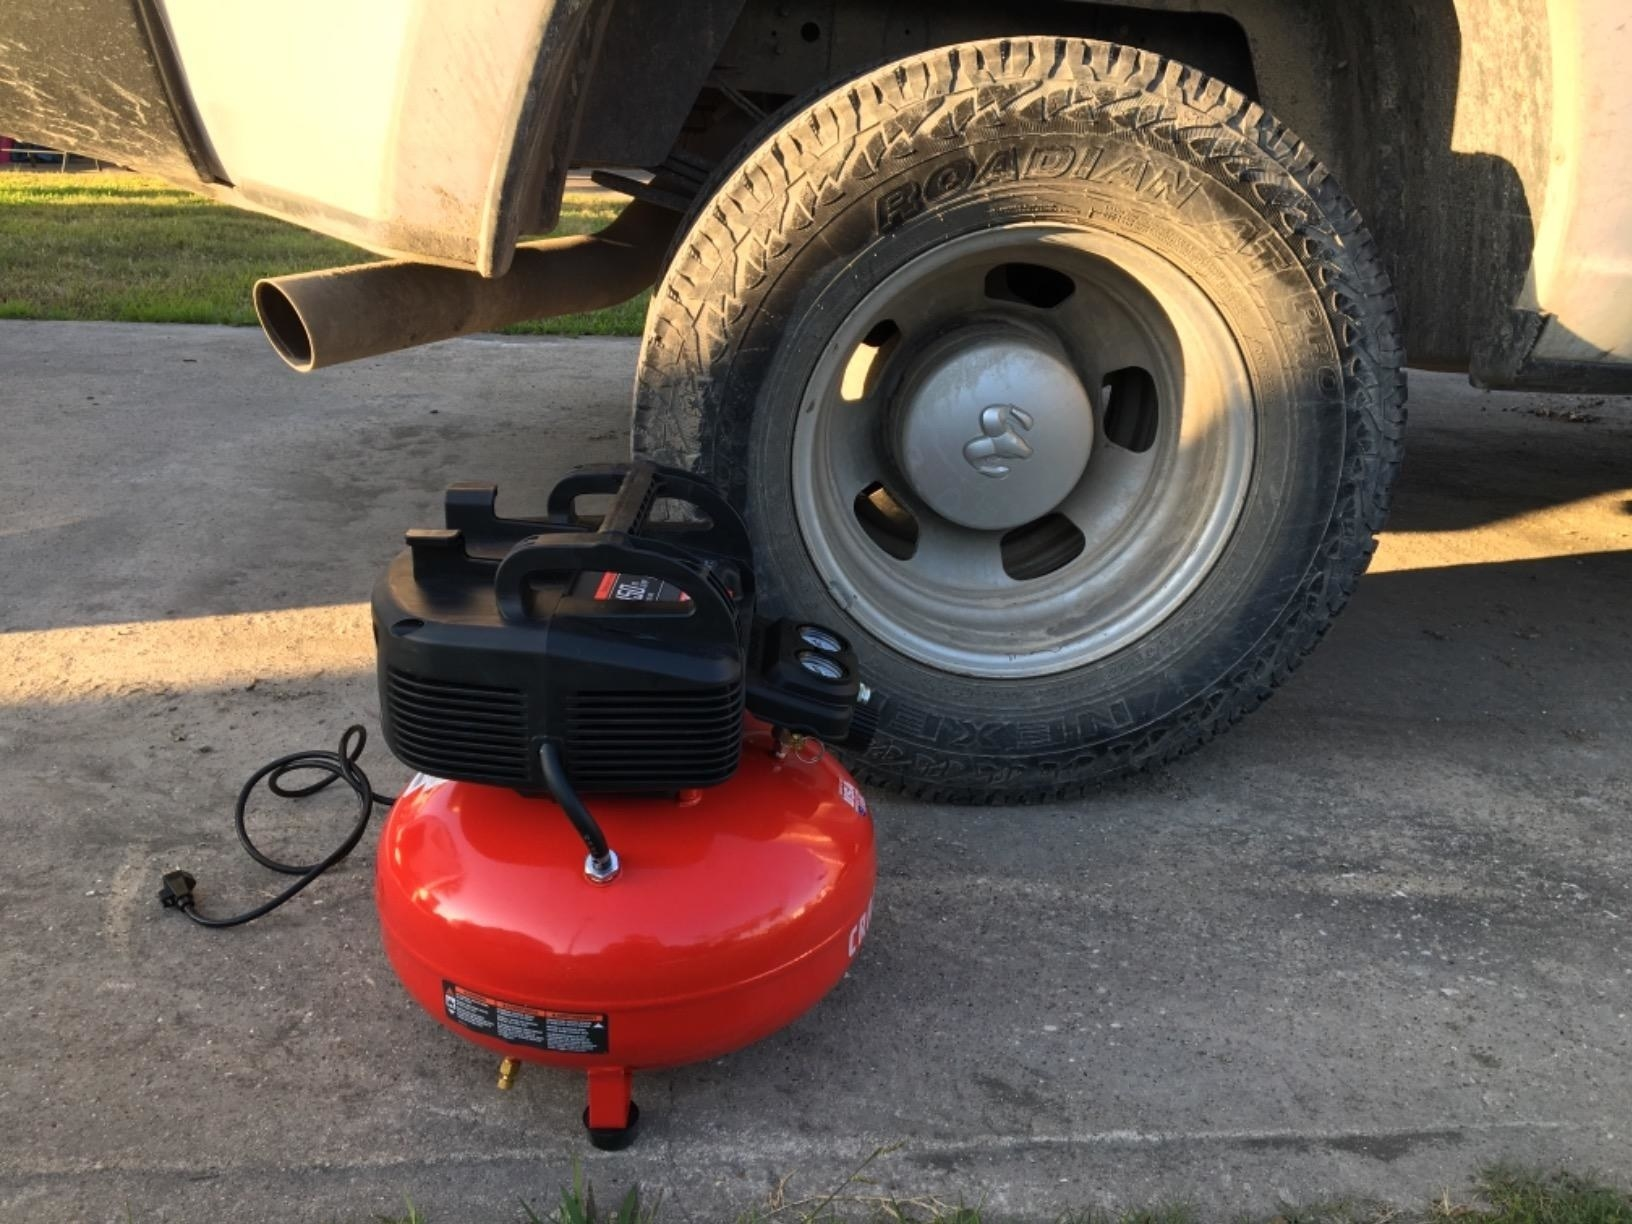 The compressor next to an RV tire